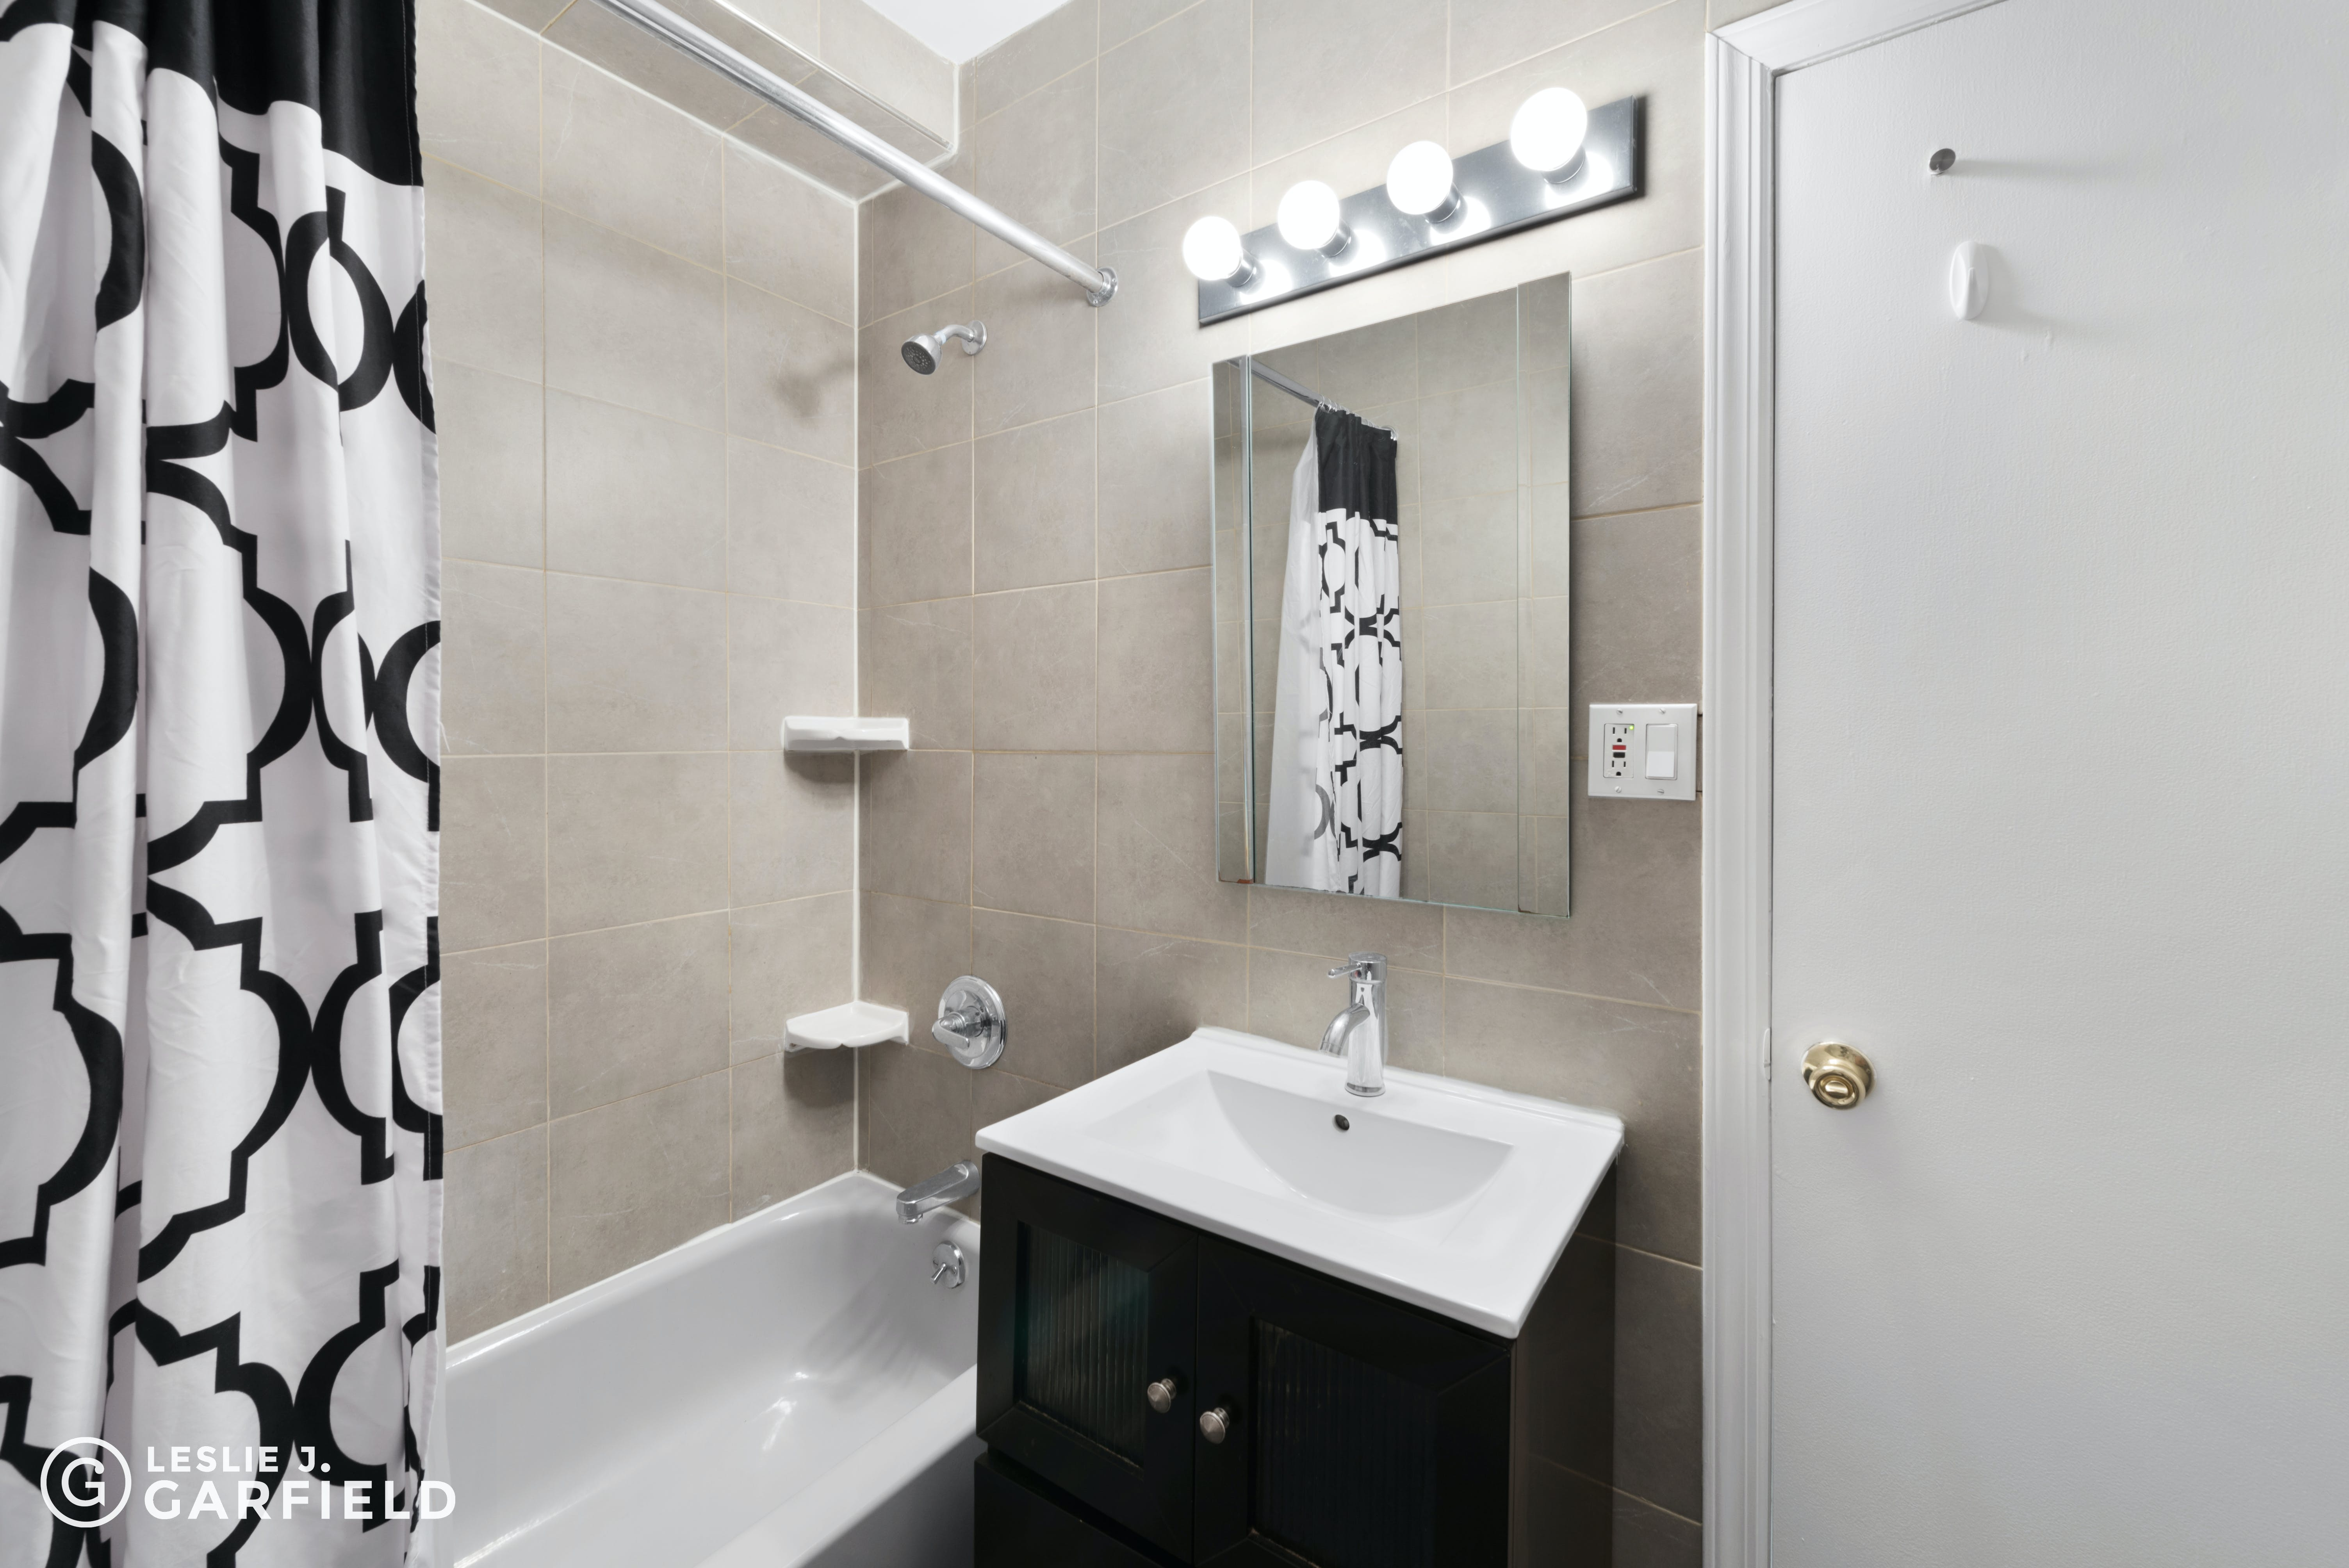 137 Thompson Street - 42930114-a27e-4e7a-b642-bfa3c4bc08dd - New York City Townhouse Real Estate